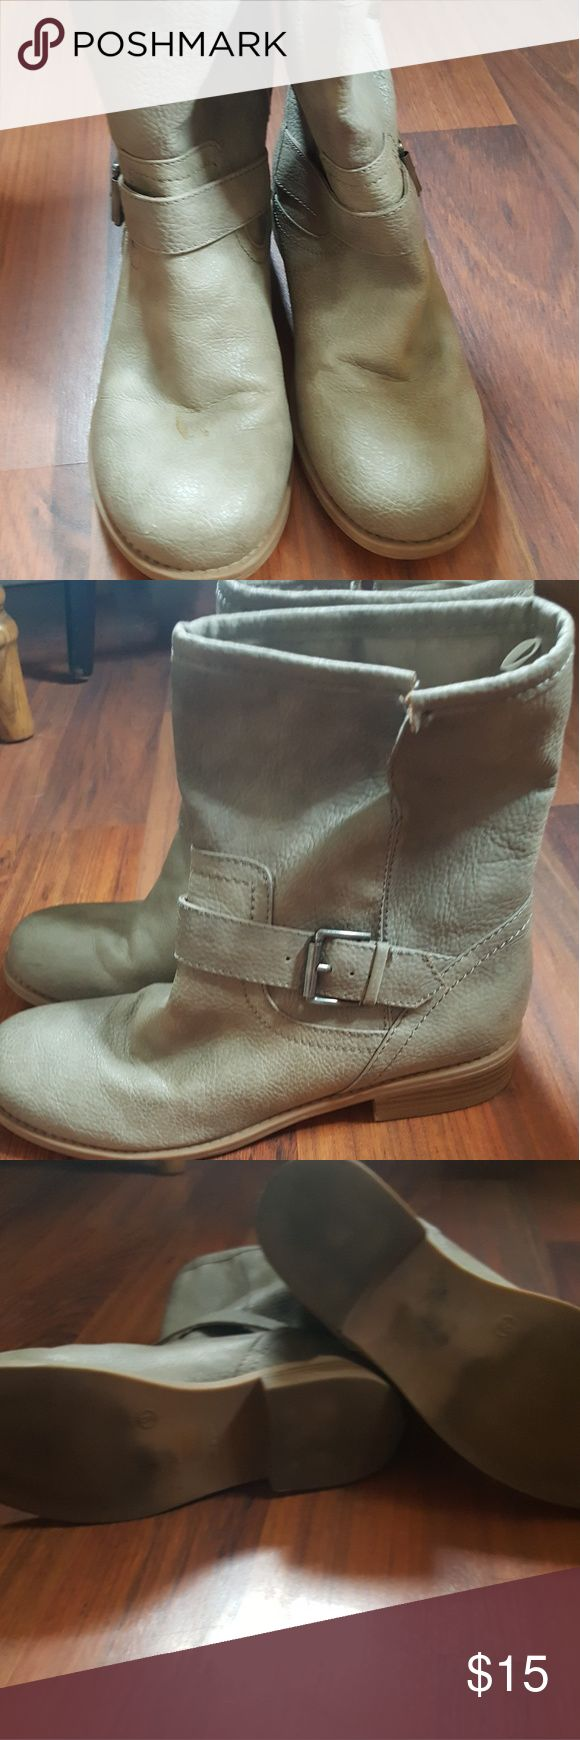 Old Navy Moto boots Worn only a handful of times great Old Navy moto boots Old Navy Shoes Combat & Moto Boots